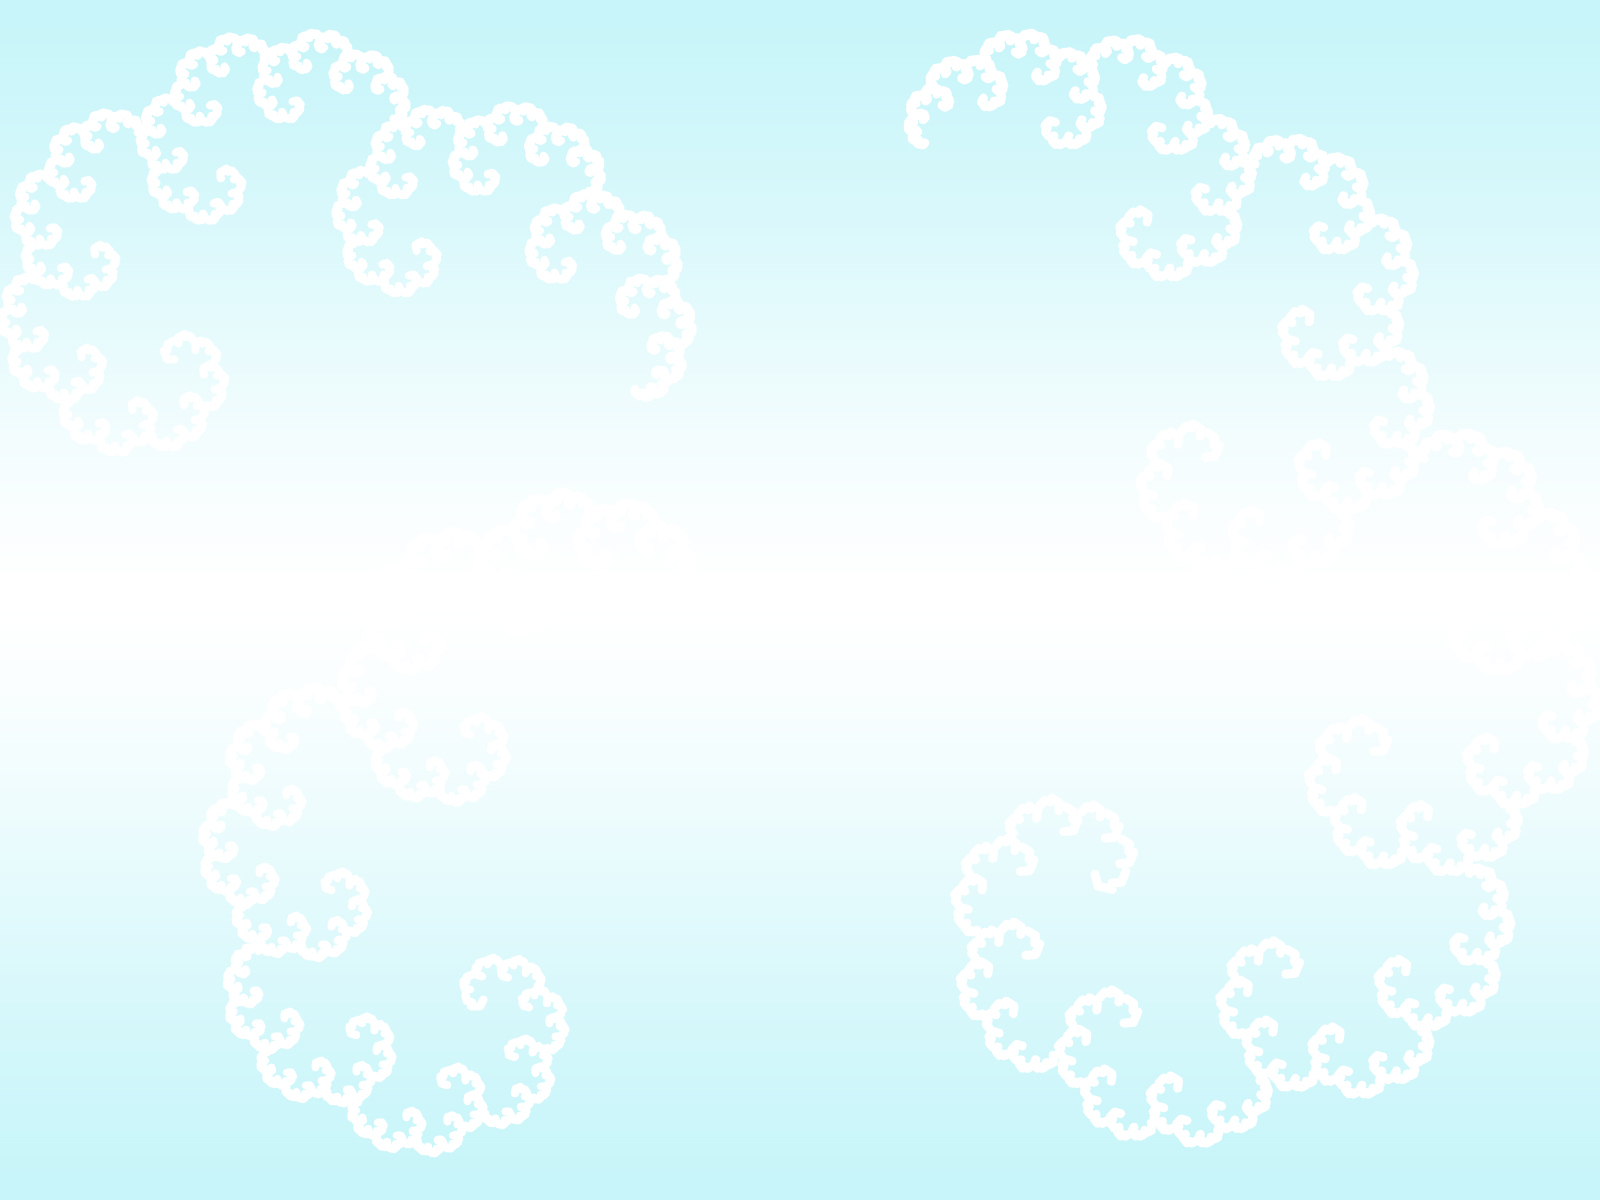 Fractal Clouds PPT Backgrounds